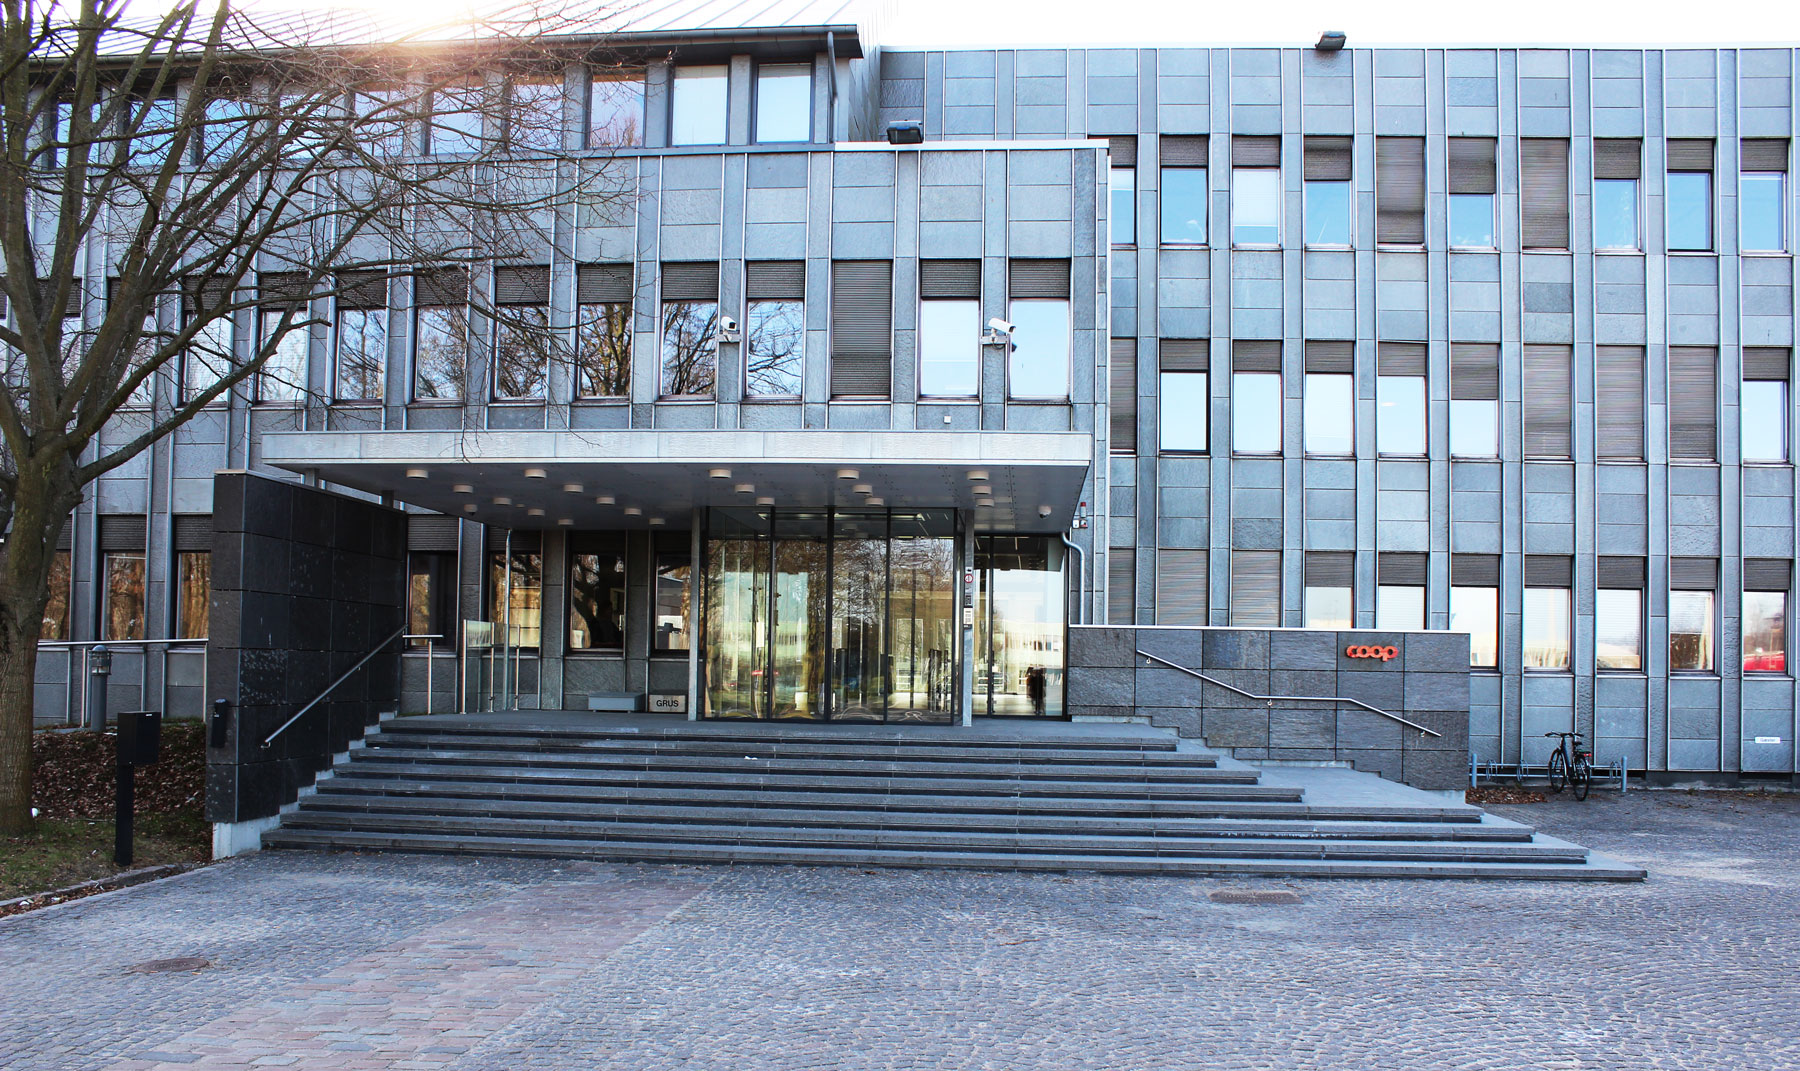 Coop Albertslund - Renovation and modernization of Coop headquarter